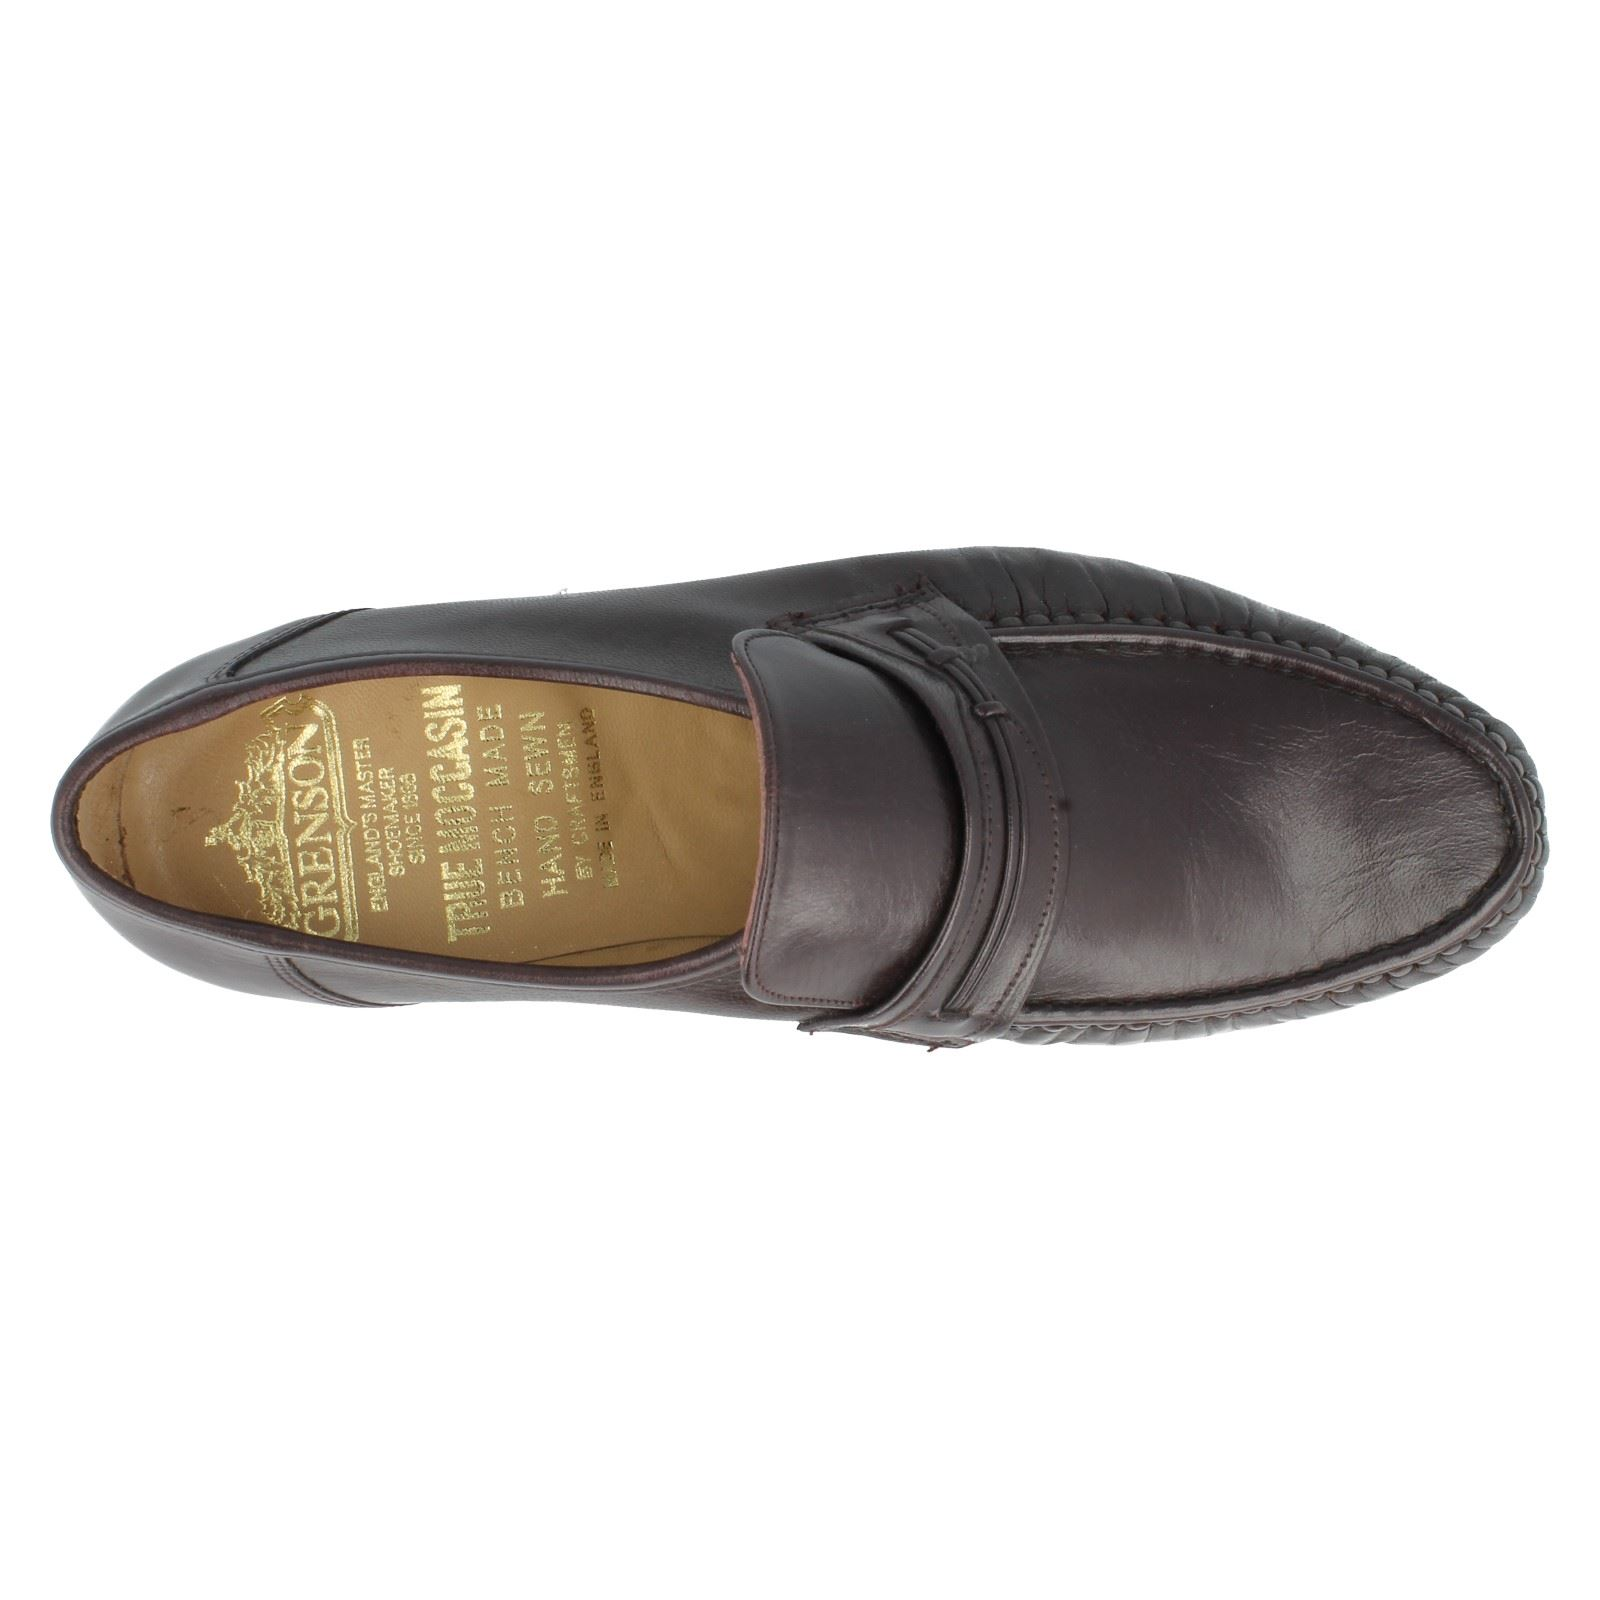 Para Hombre Grenson Fx Slip On Leather Fx Grenson Fit mocasines formales Zapatos Orlando 9648 95e611